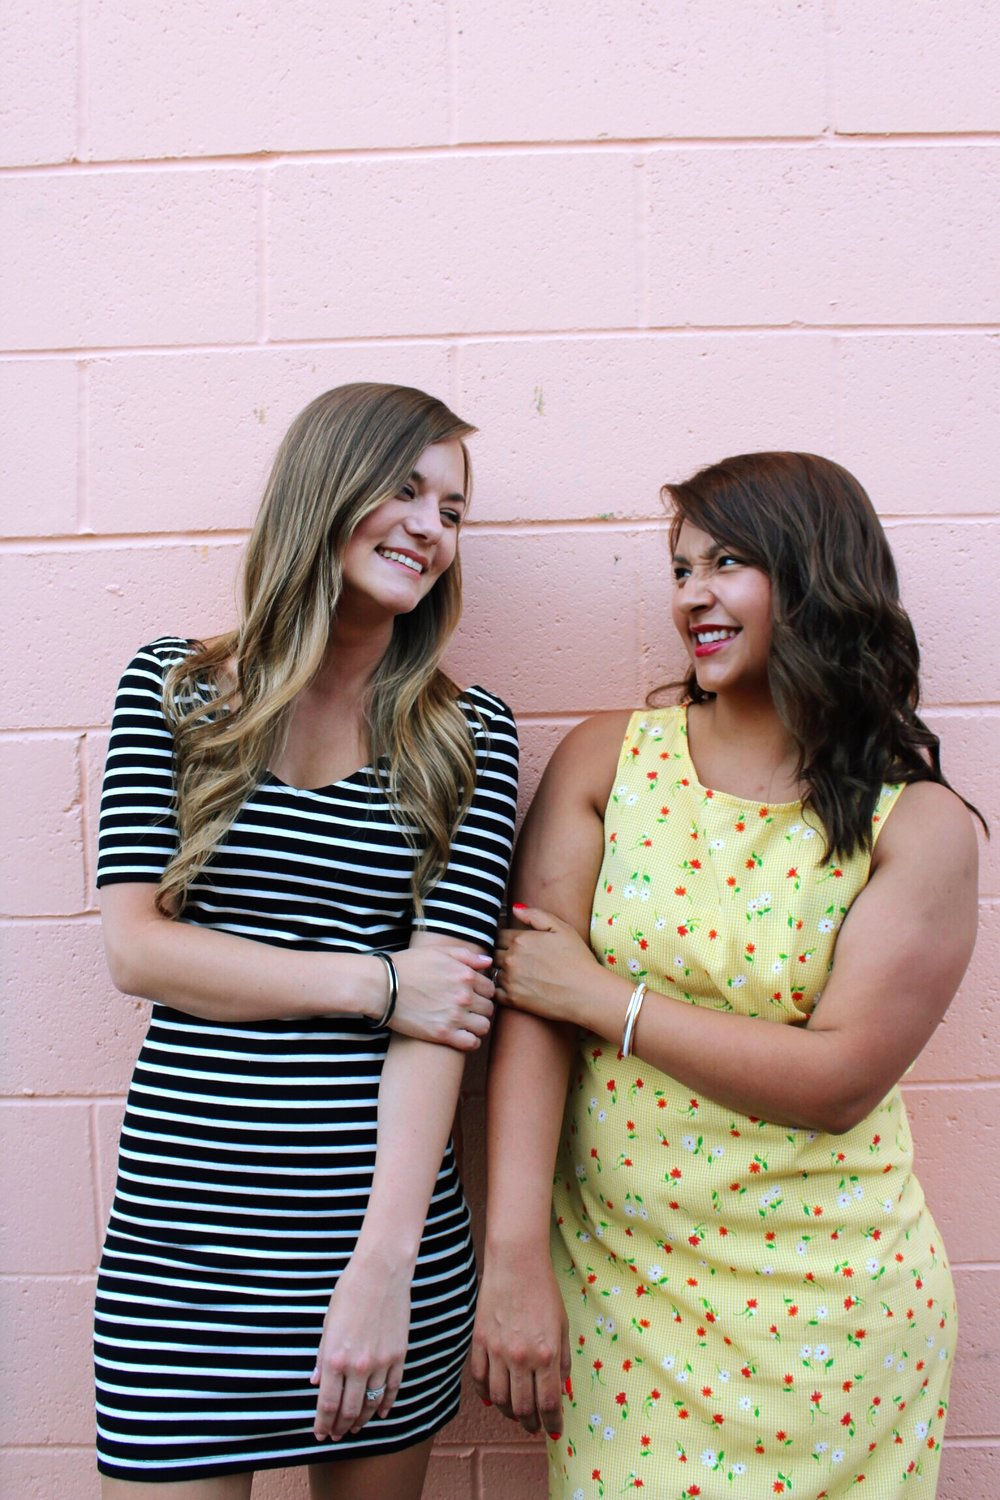 Pink Wall. BFF's Celebrating National Best Friend Day.